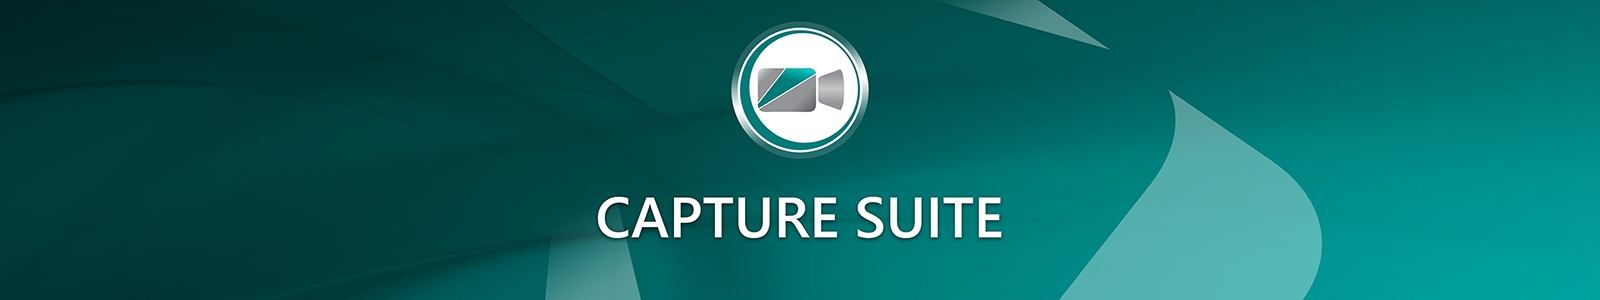 Capture Suite logo